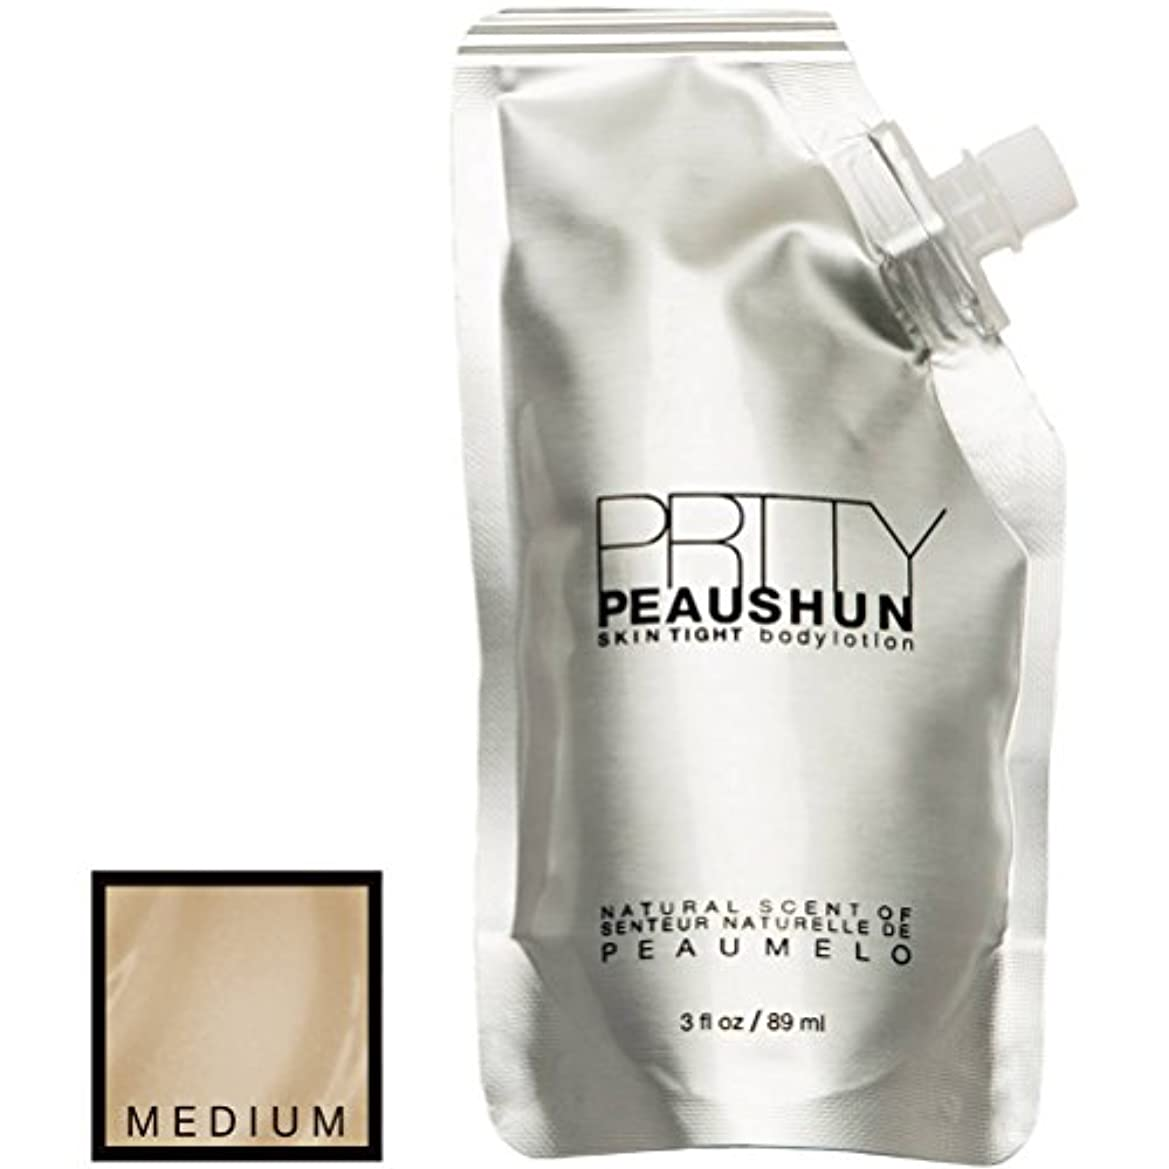 自殺クラック現実的Prtty Peaushun Skin Tight Body Lotion - Medium by Prtty Peaushun